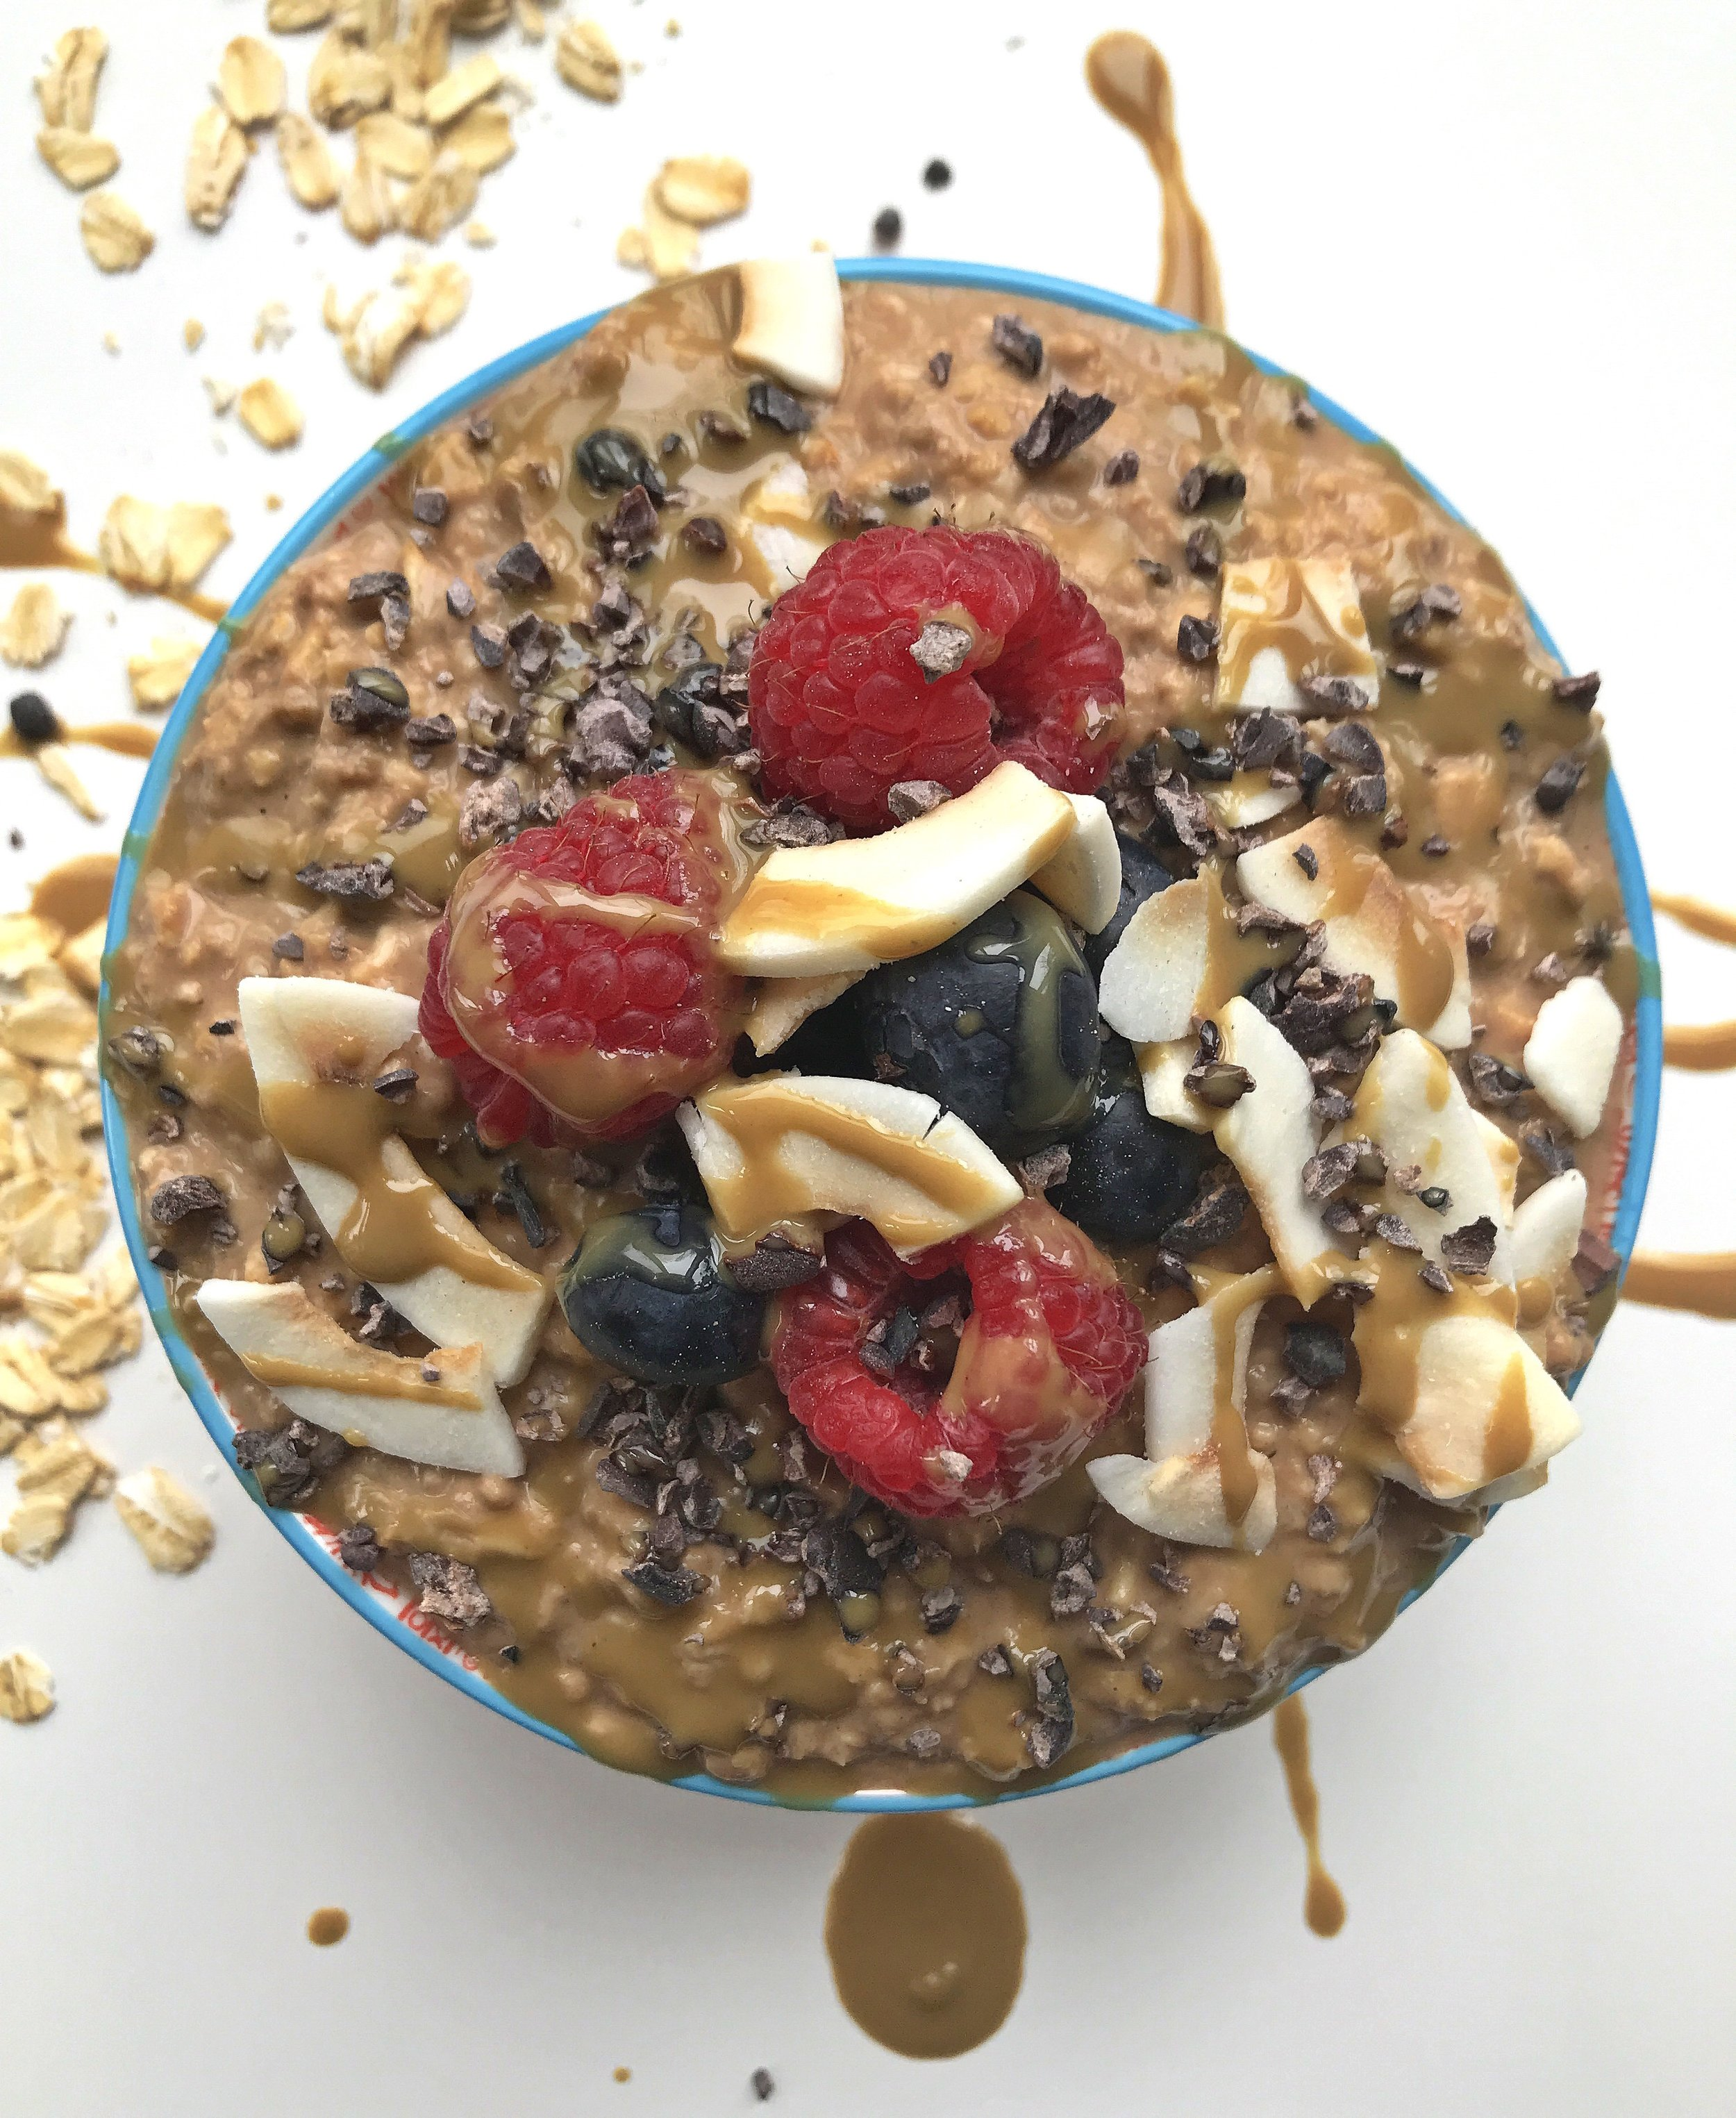 """""""REESE'S"""" PEANUT BUTTER PROBIOTIC PROATS MADE WITH KEFIR IN PLACE OF ALMOND MILK. TOPPED WITH BERRIES, CACAO NIBS, COCONUT CHIPS, AND SUNBUTTER MELTED WITH A TOUCH OF COCONUT OIL."""